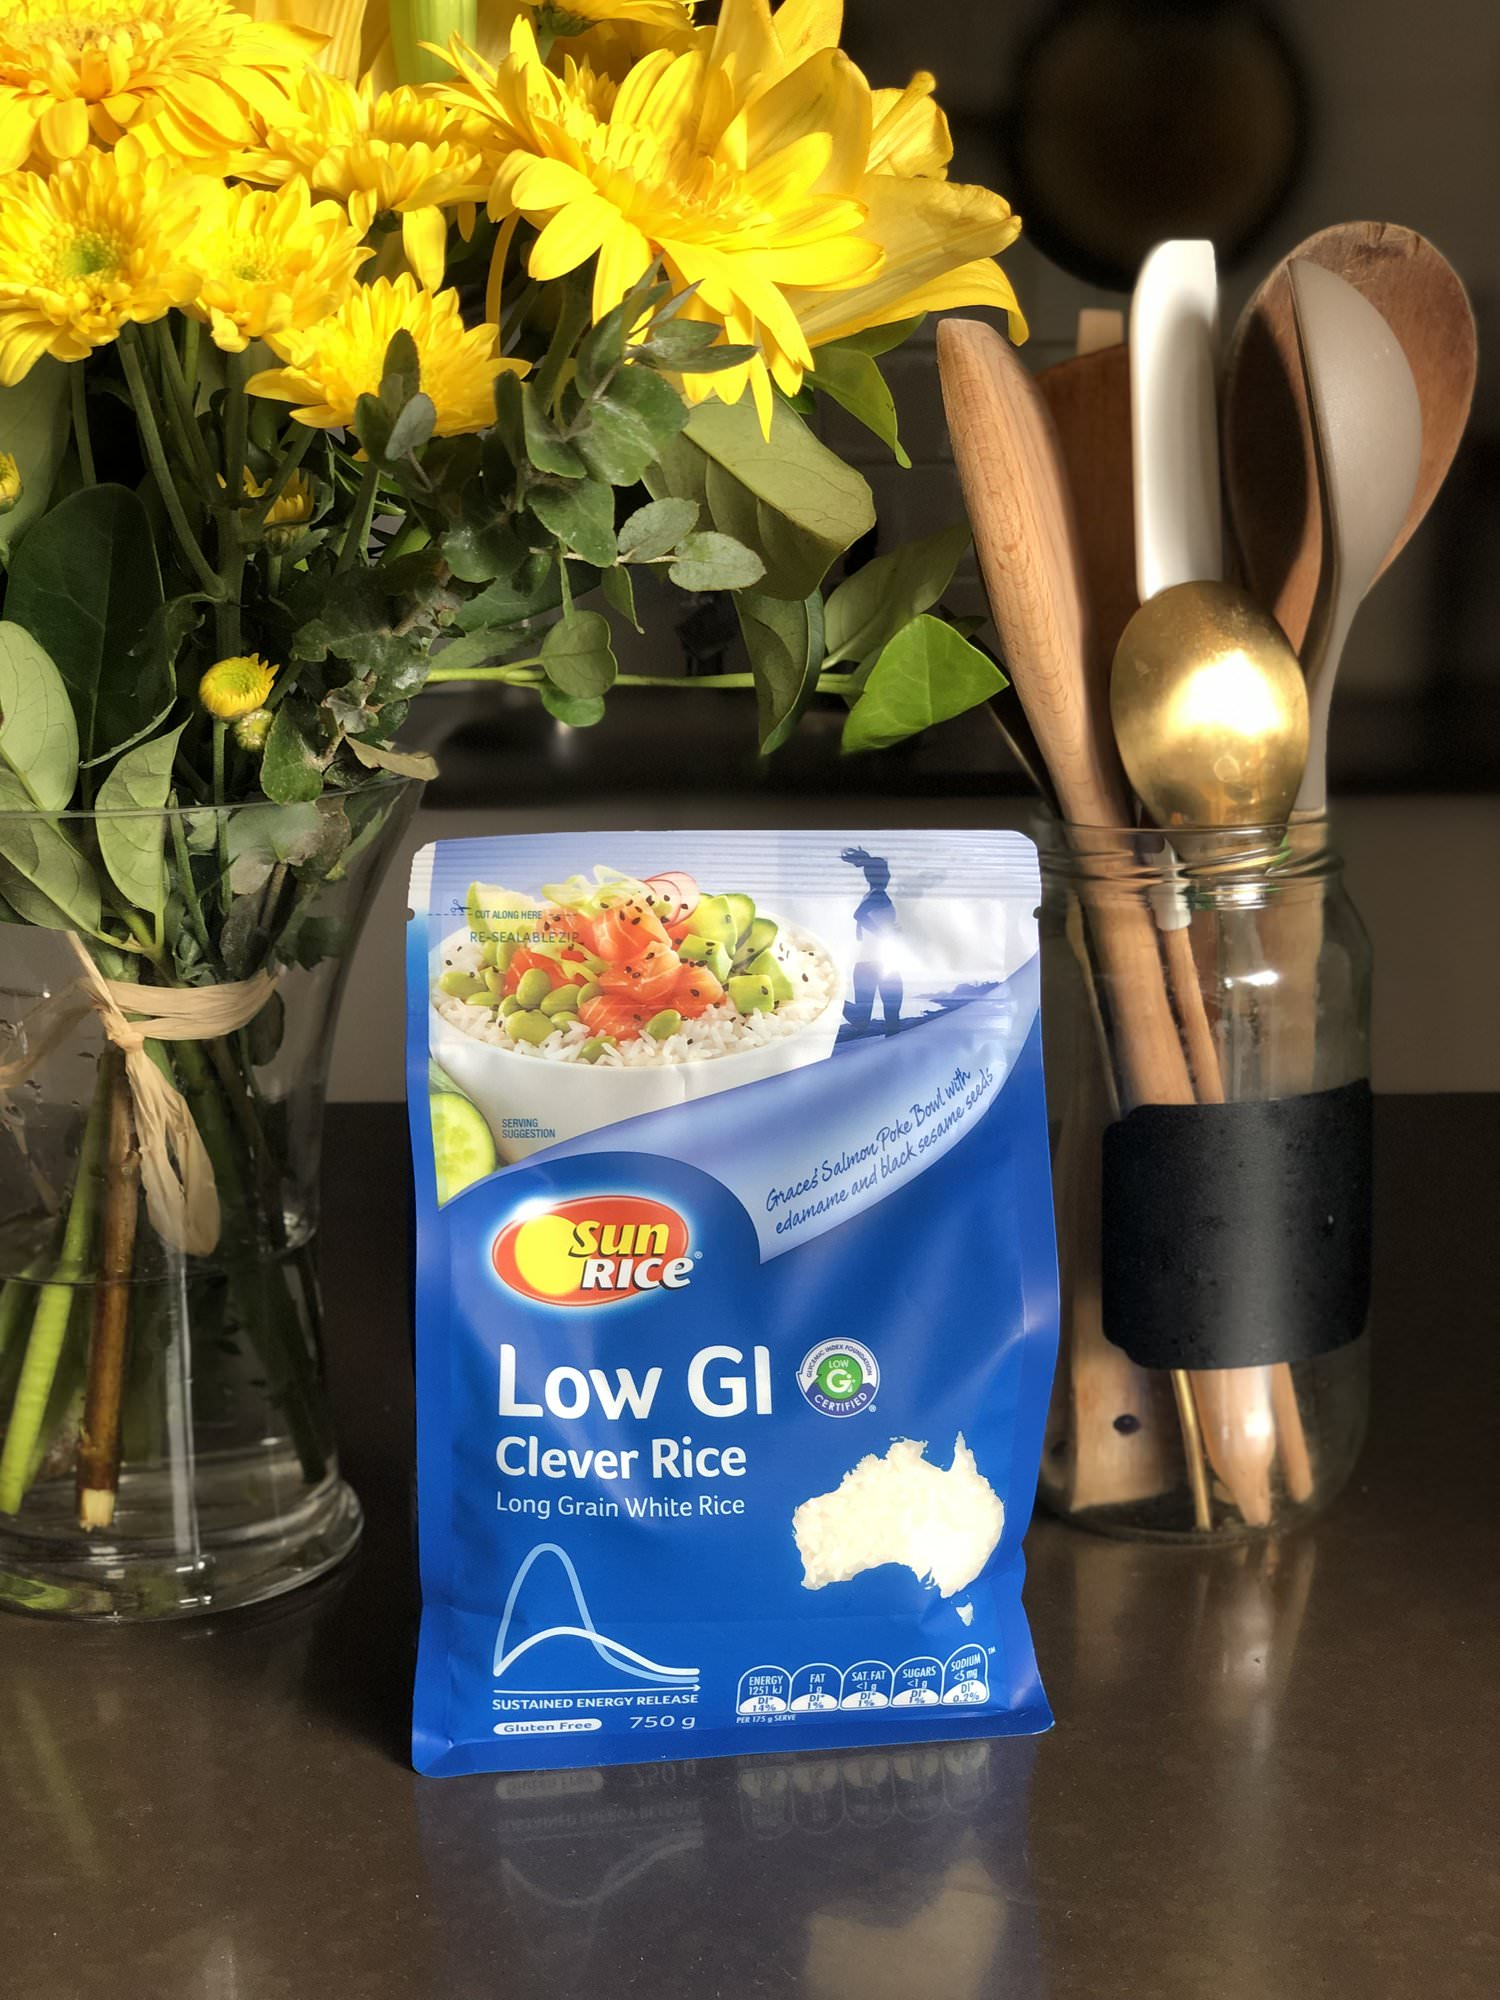 SunRice Low GI white rice has a lovely new look packaging!